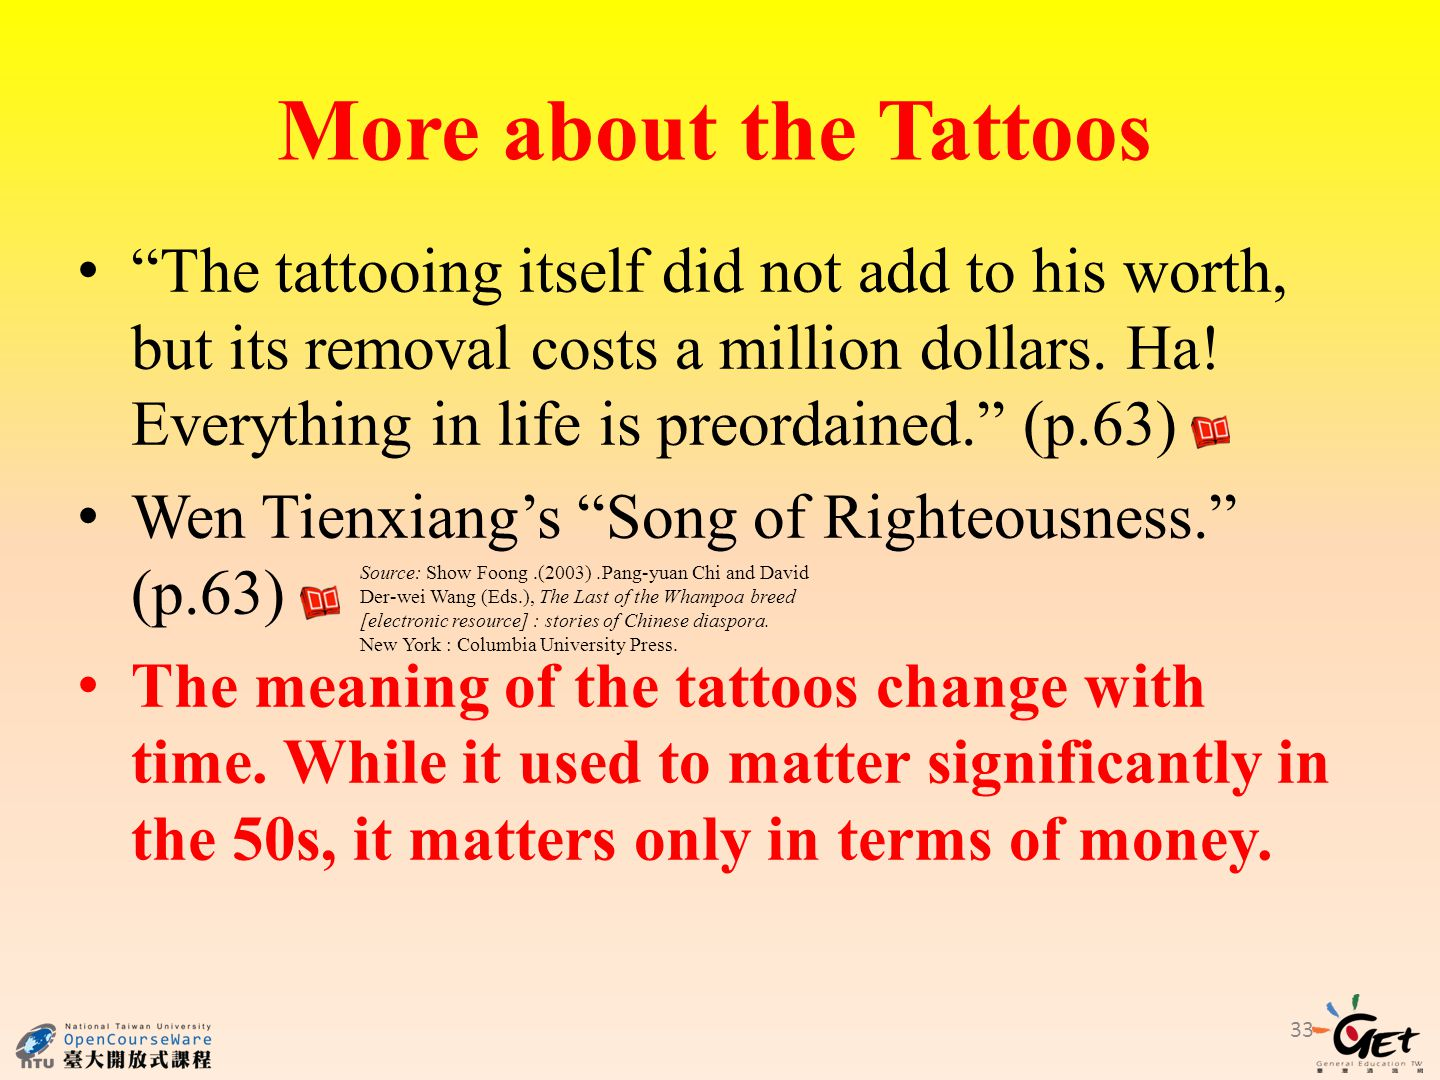 More about the Tattoos The tattooing itself did not add to his worth, but its removal costs a million dollars.